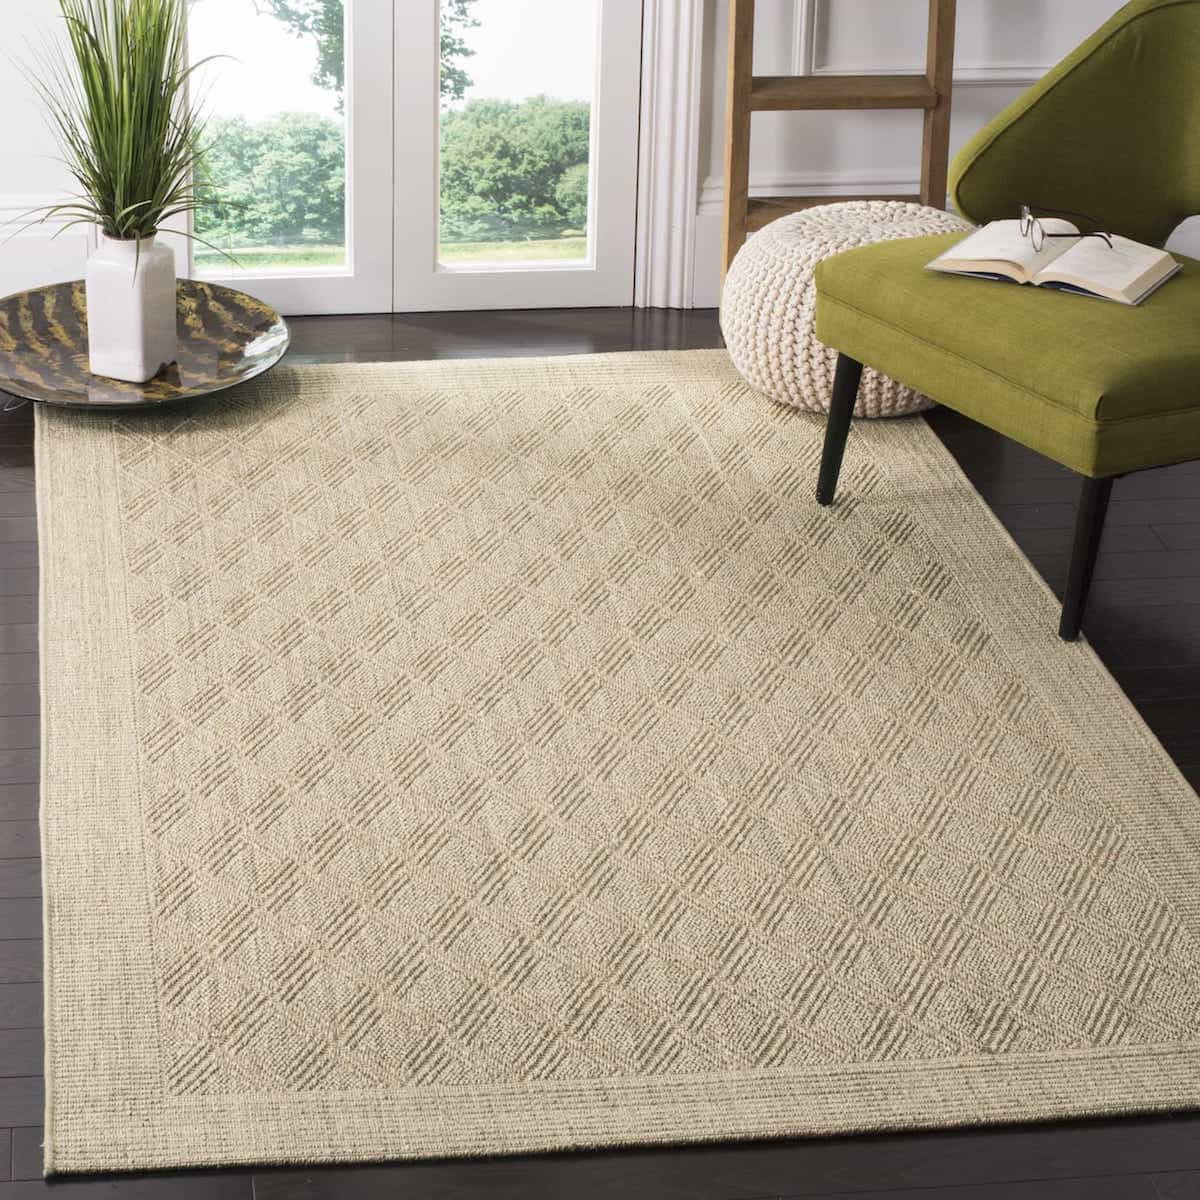 10×14 Neutral Brown Sisal Rug For Living Room Area (View 13 of 15)